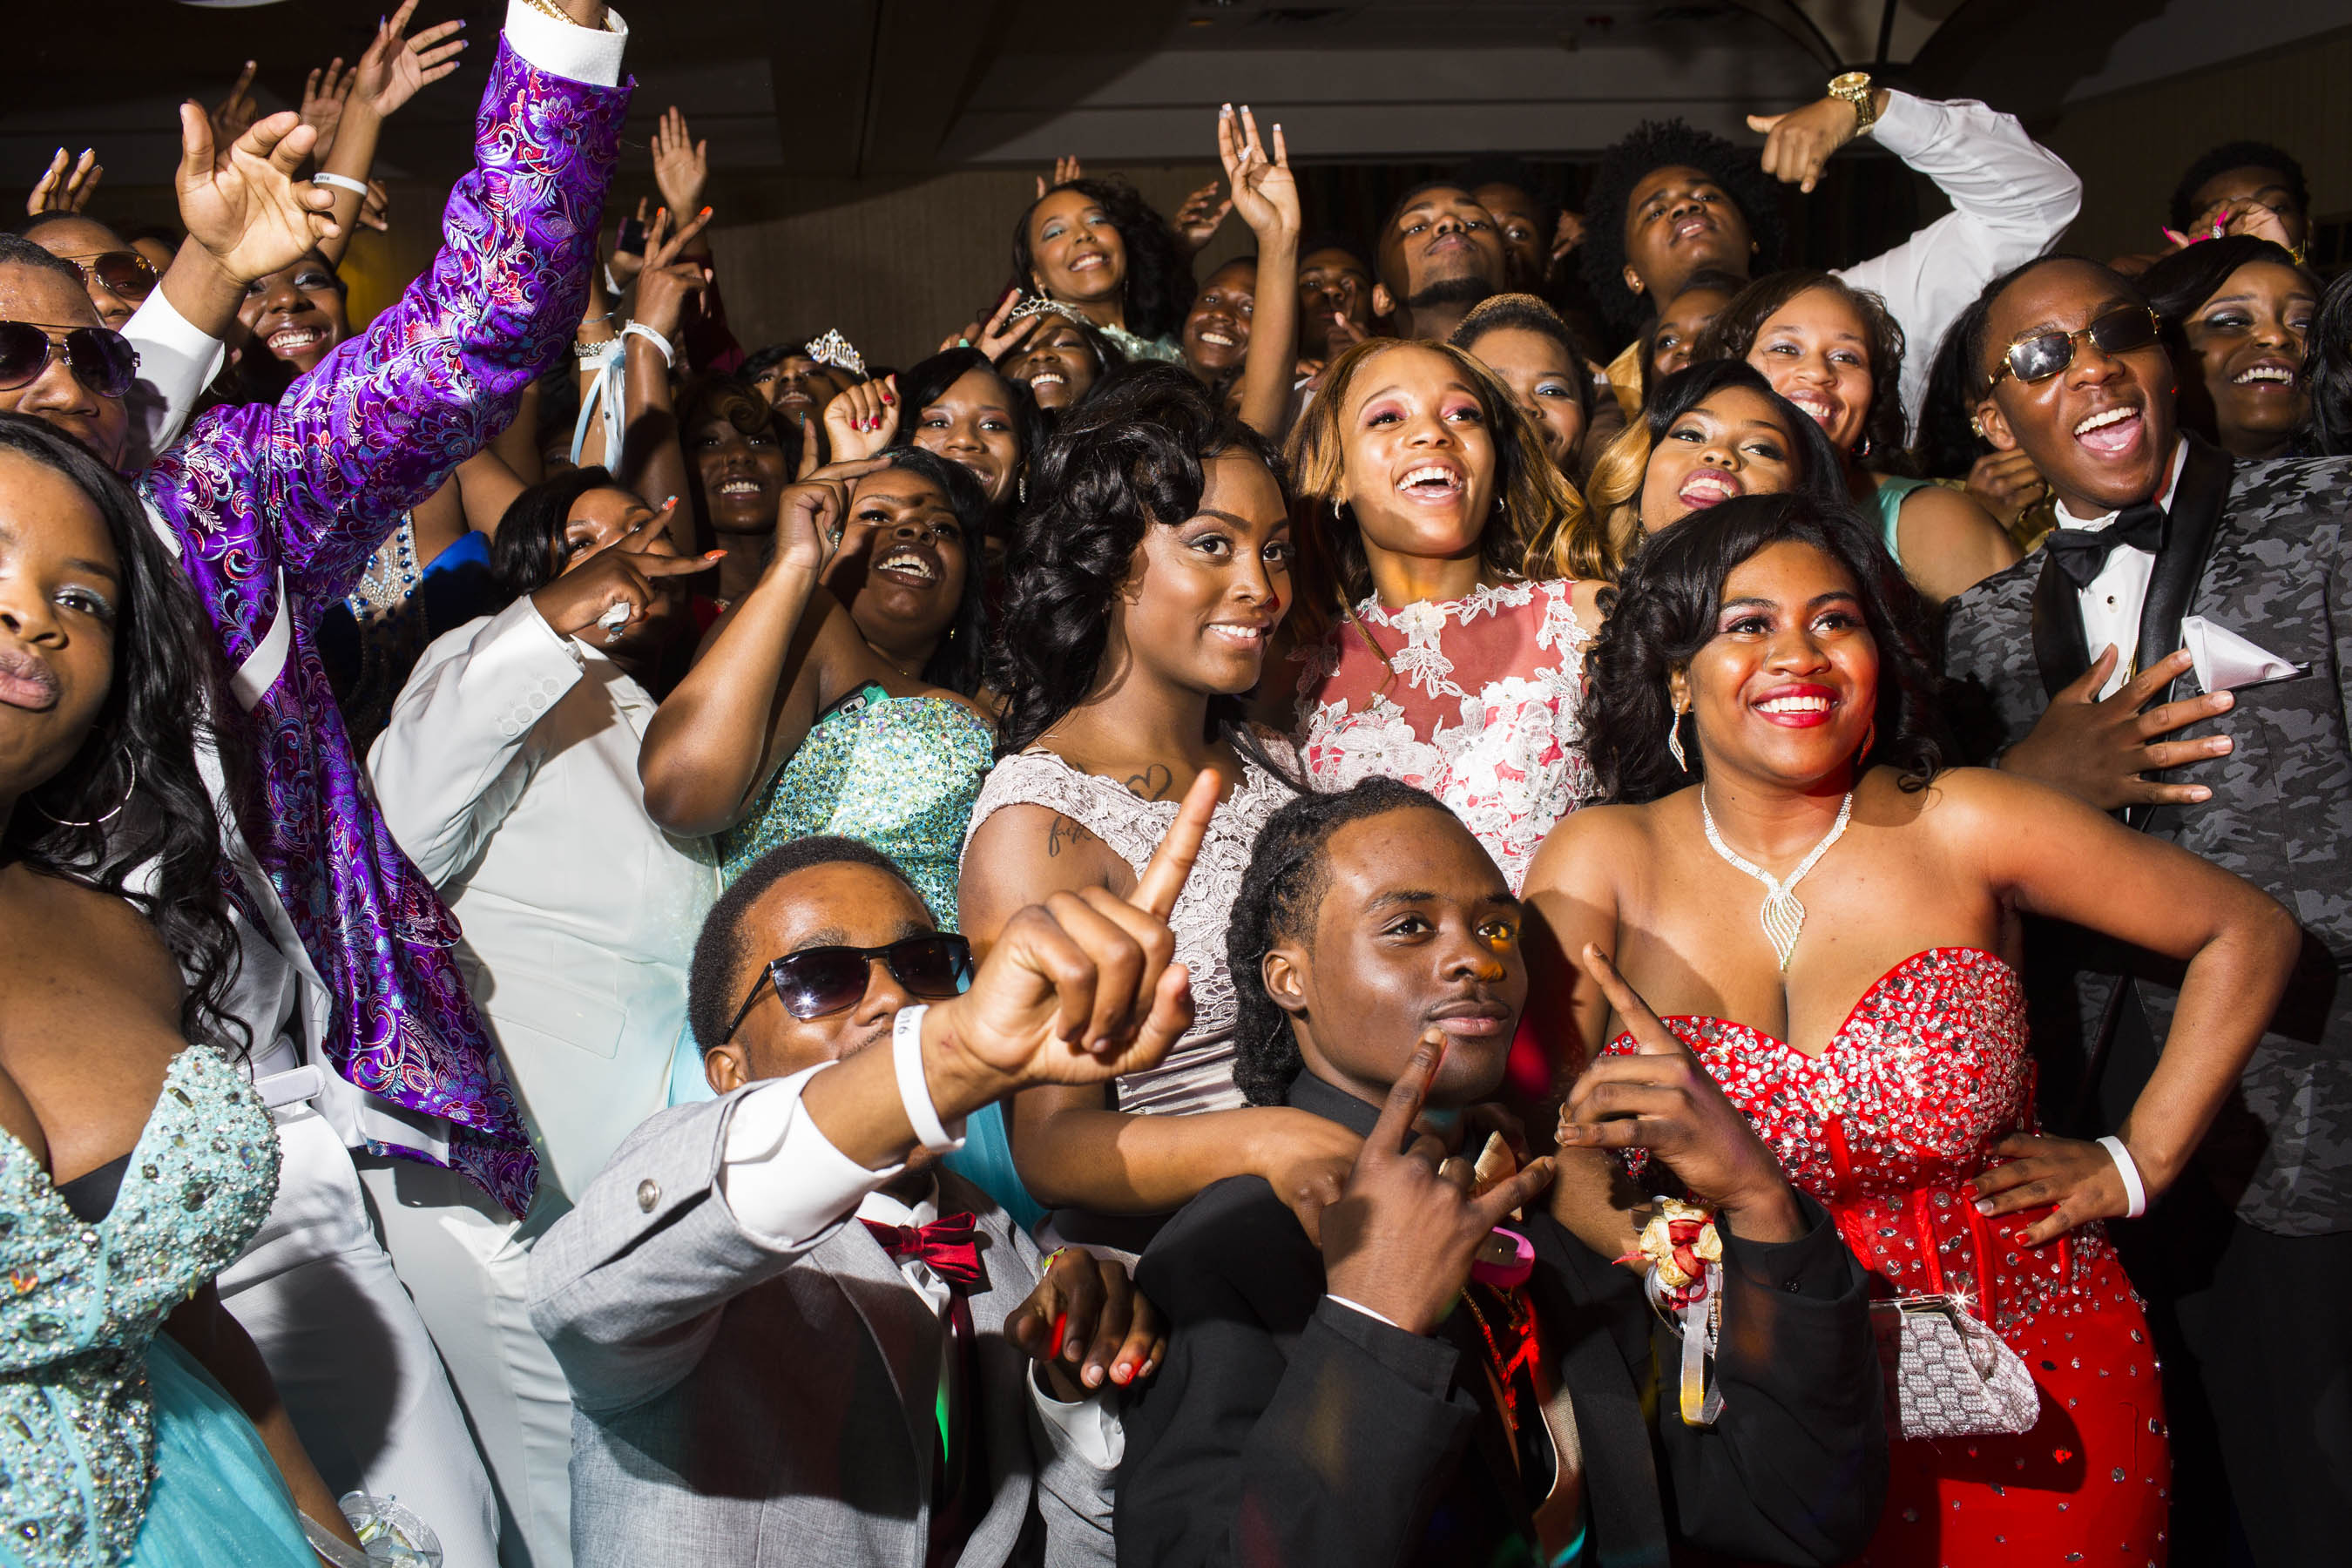 Students on the dance floor pose for a group photo at the  Northwestern High School  prom on Saturday, May 21, 2016 in Flint, Michigan.